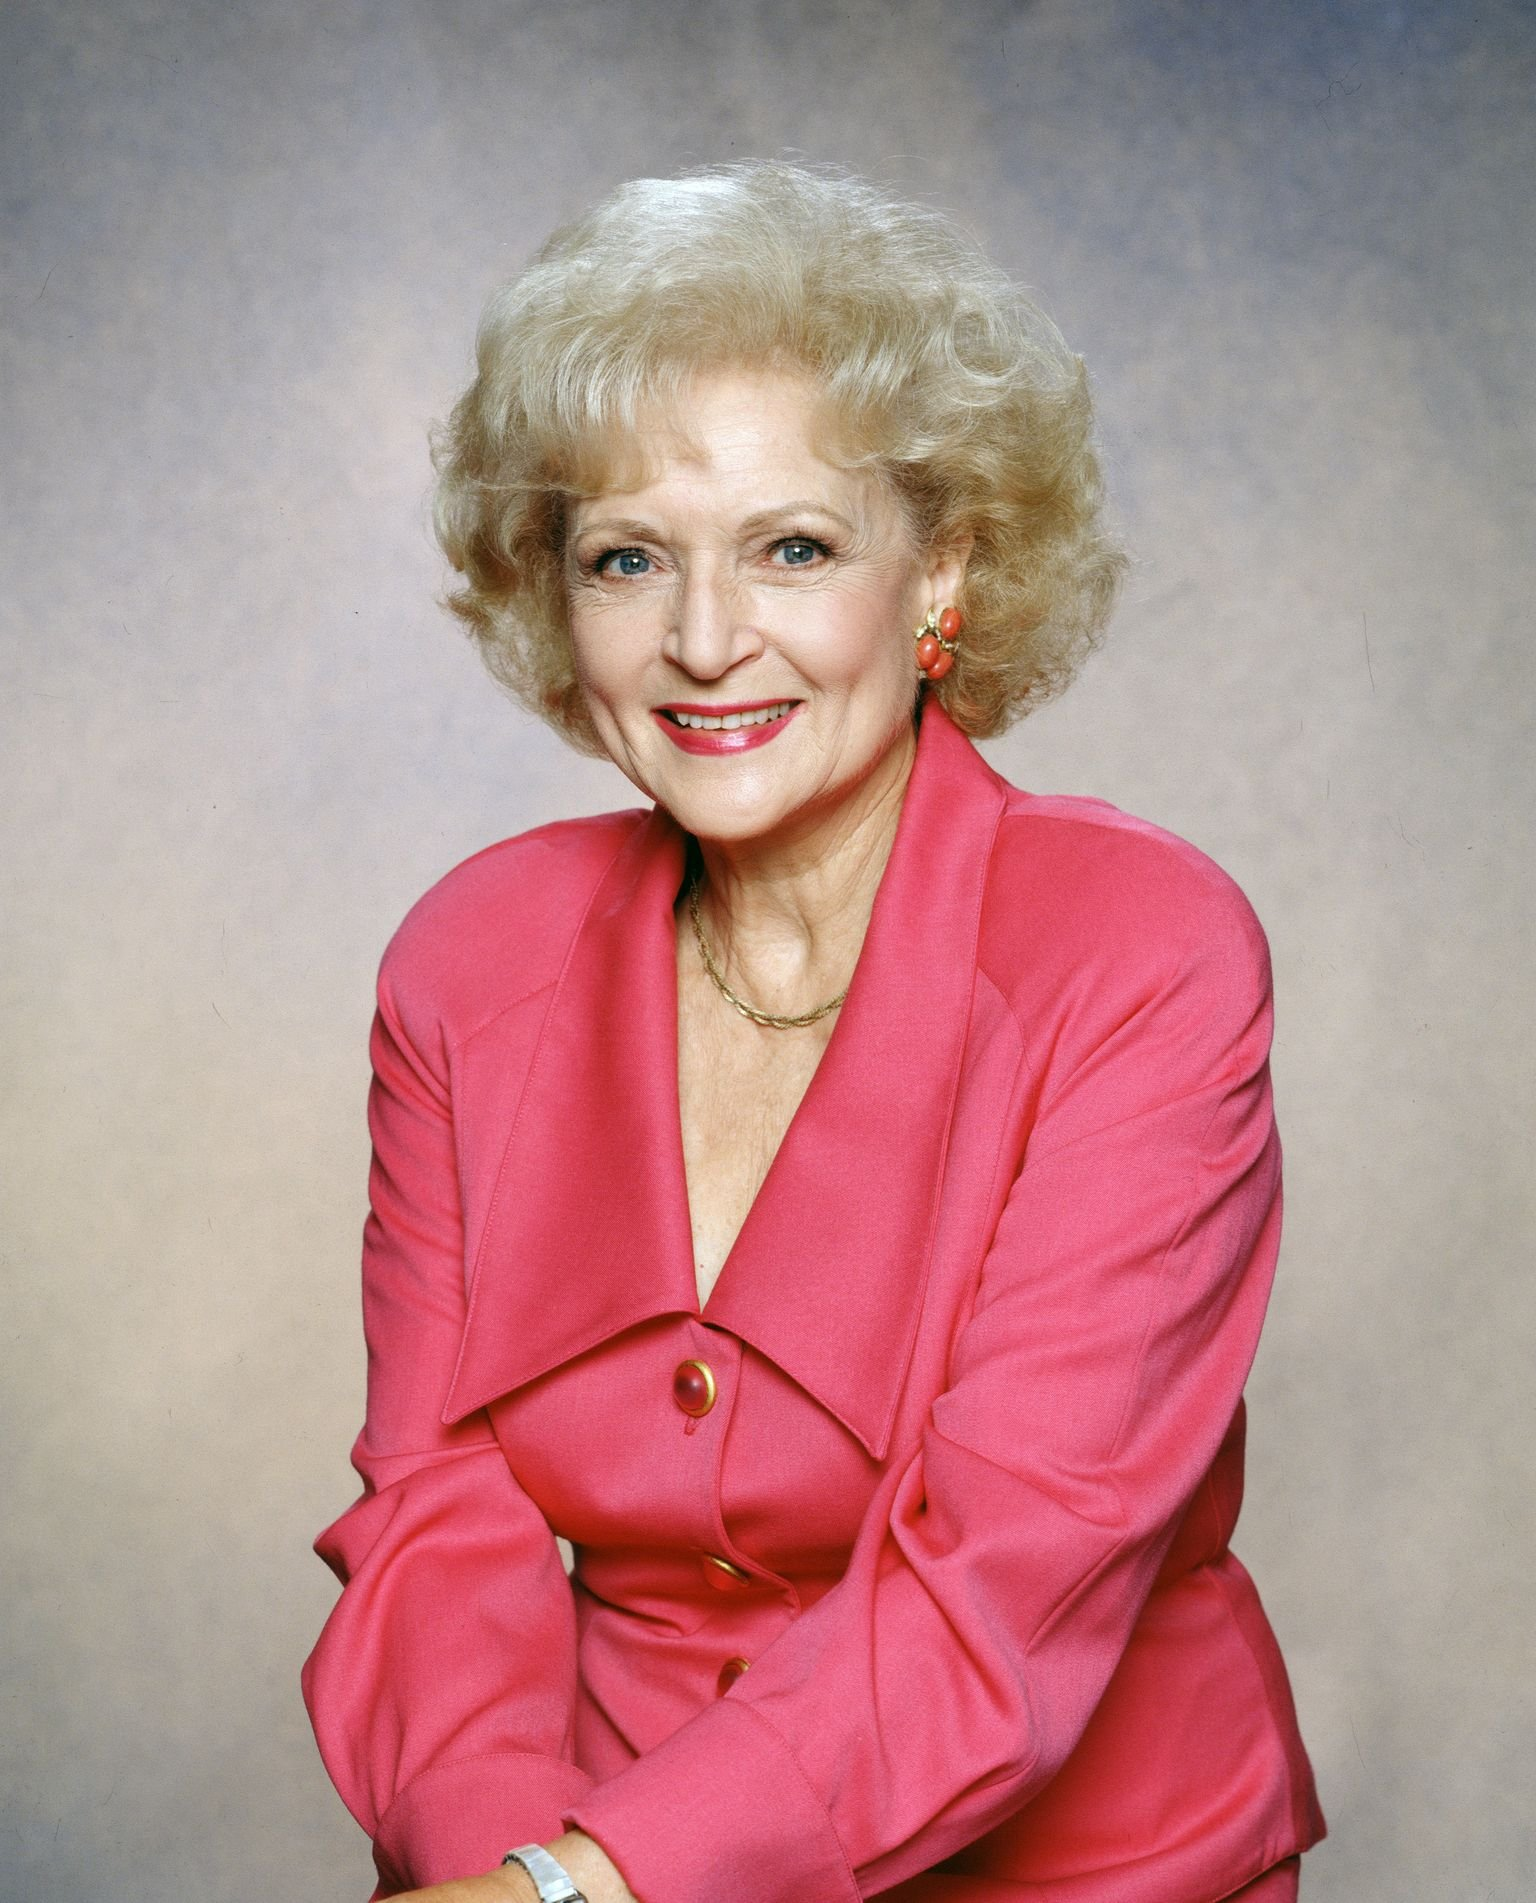 """Betty White as Rose Nylund on """"The Golden Palace"""" in 1992 